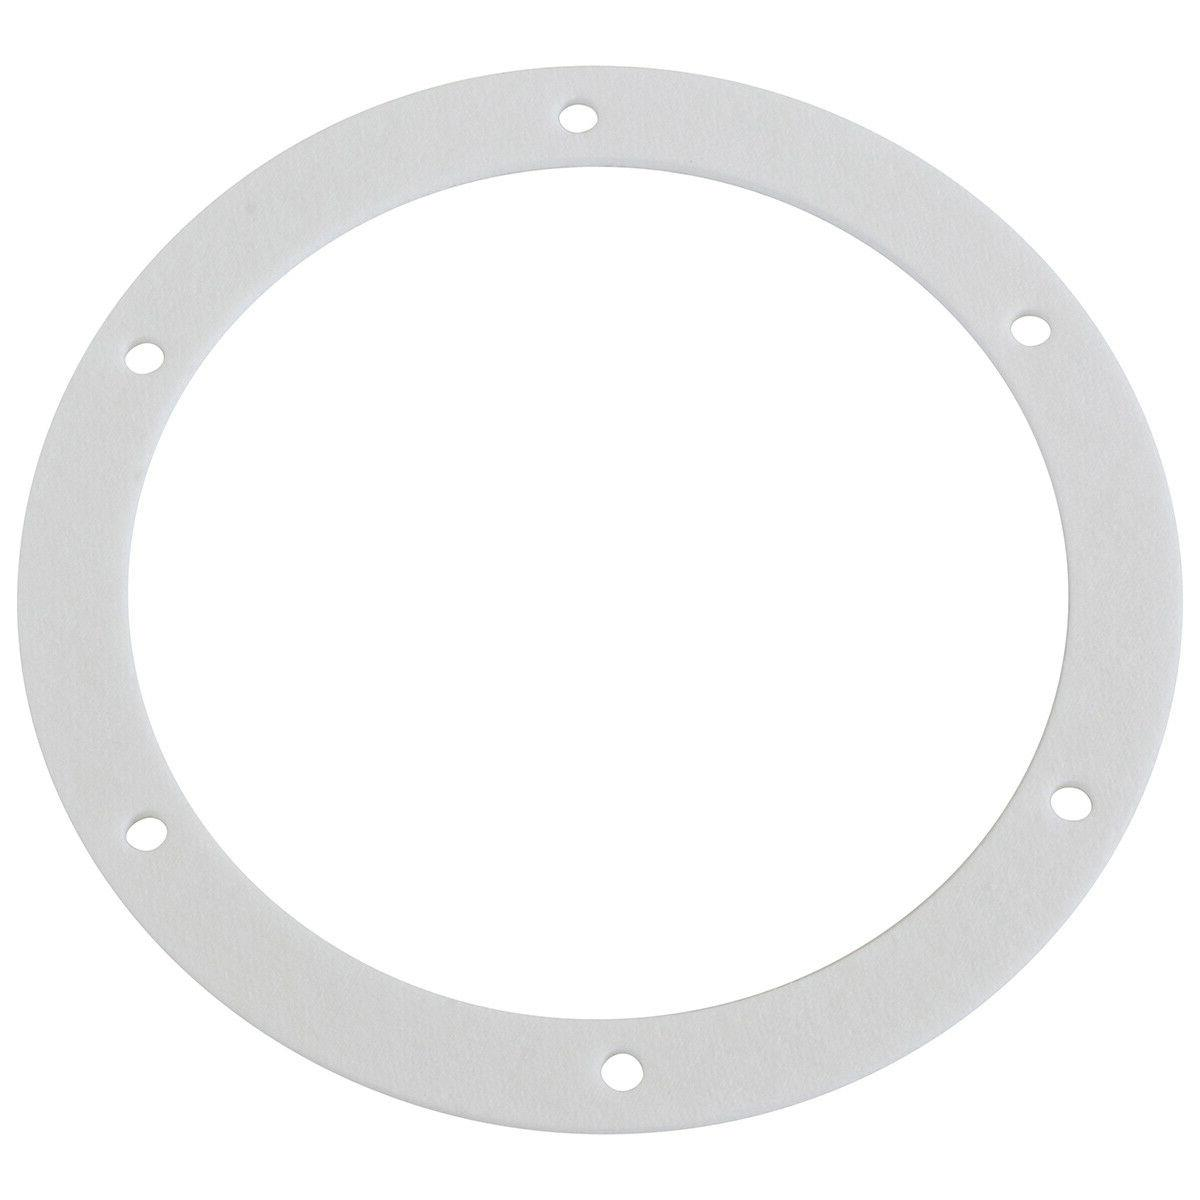 Many Liotherm Pellet Stove Gasket, 6-Inches,